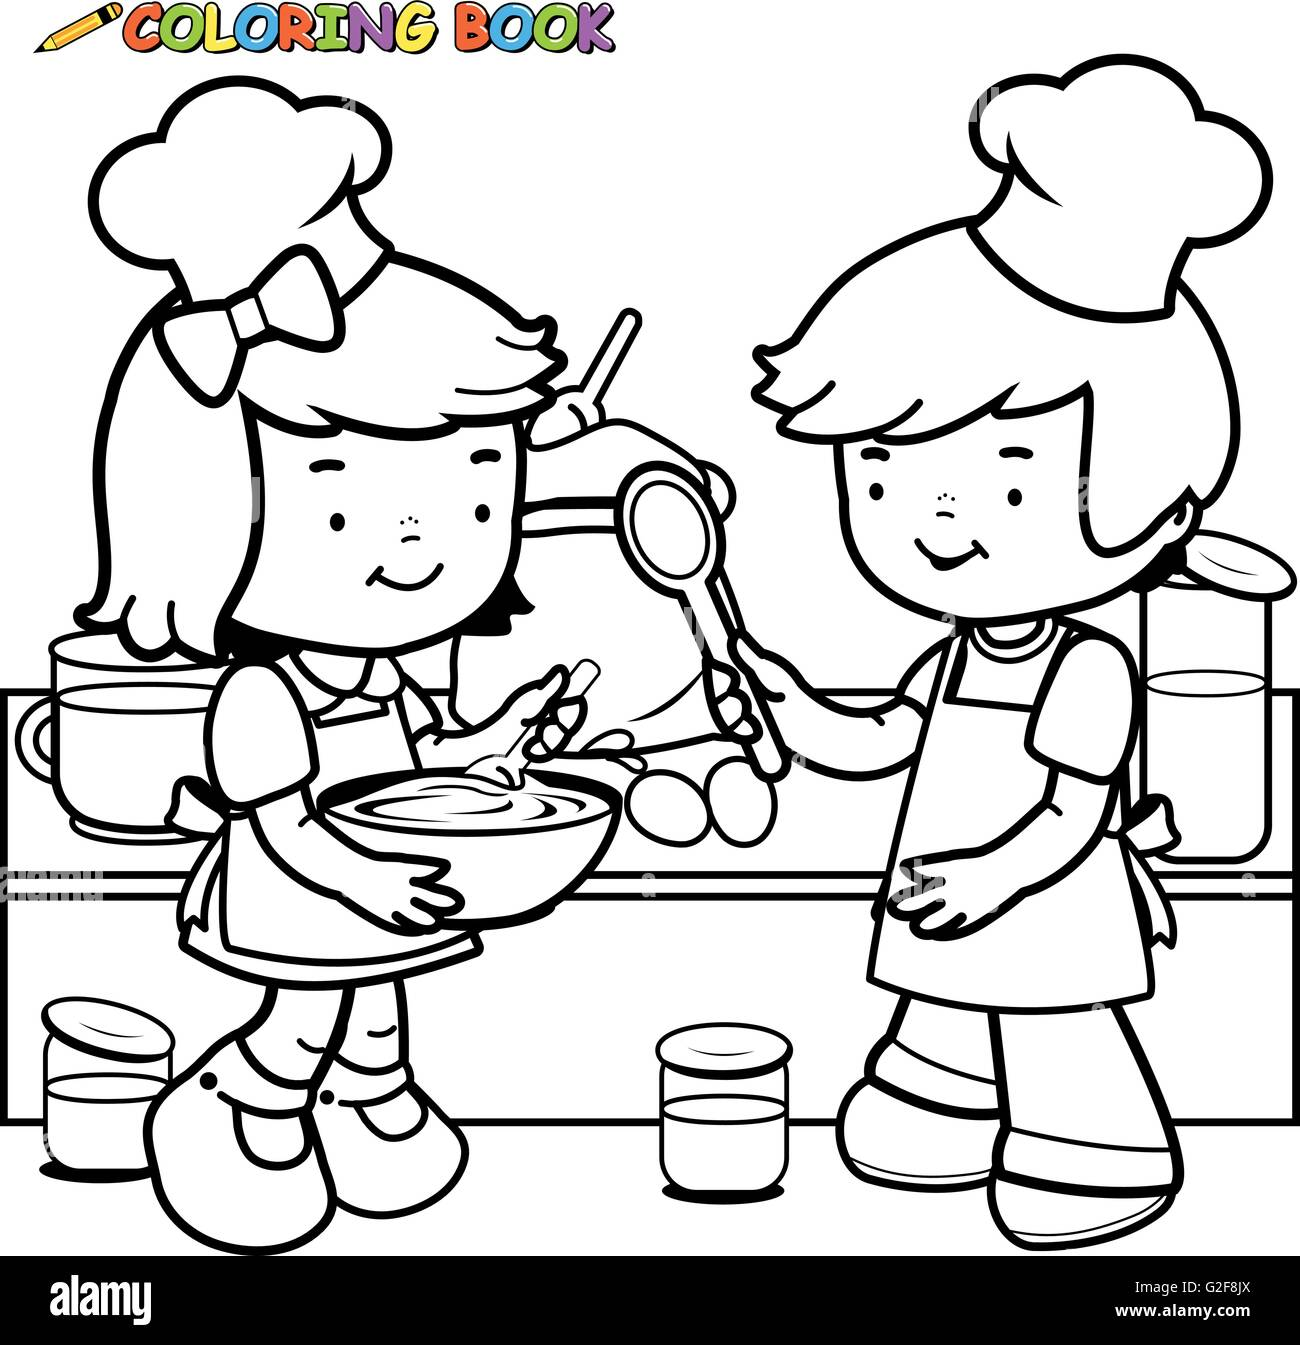 Children Cooking Coloring Book Page Stock Vector Art Illustration